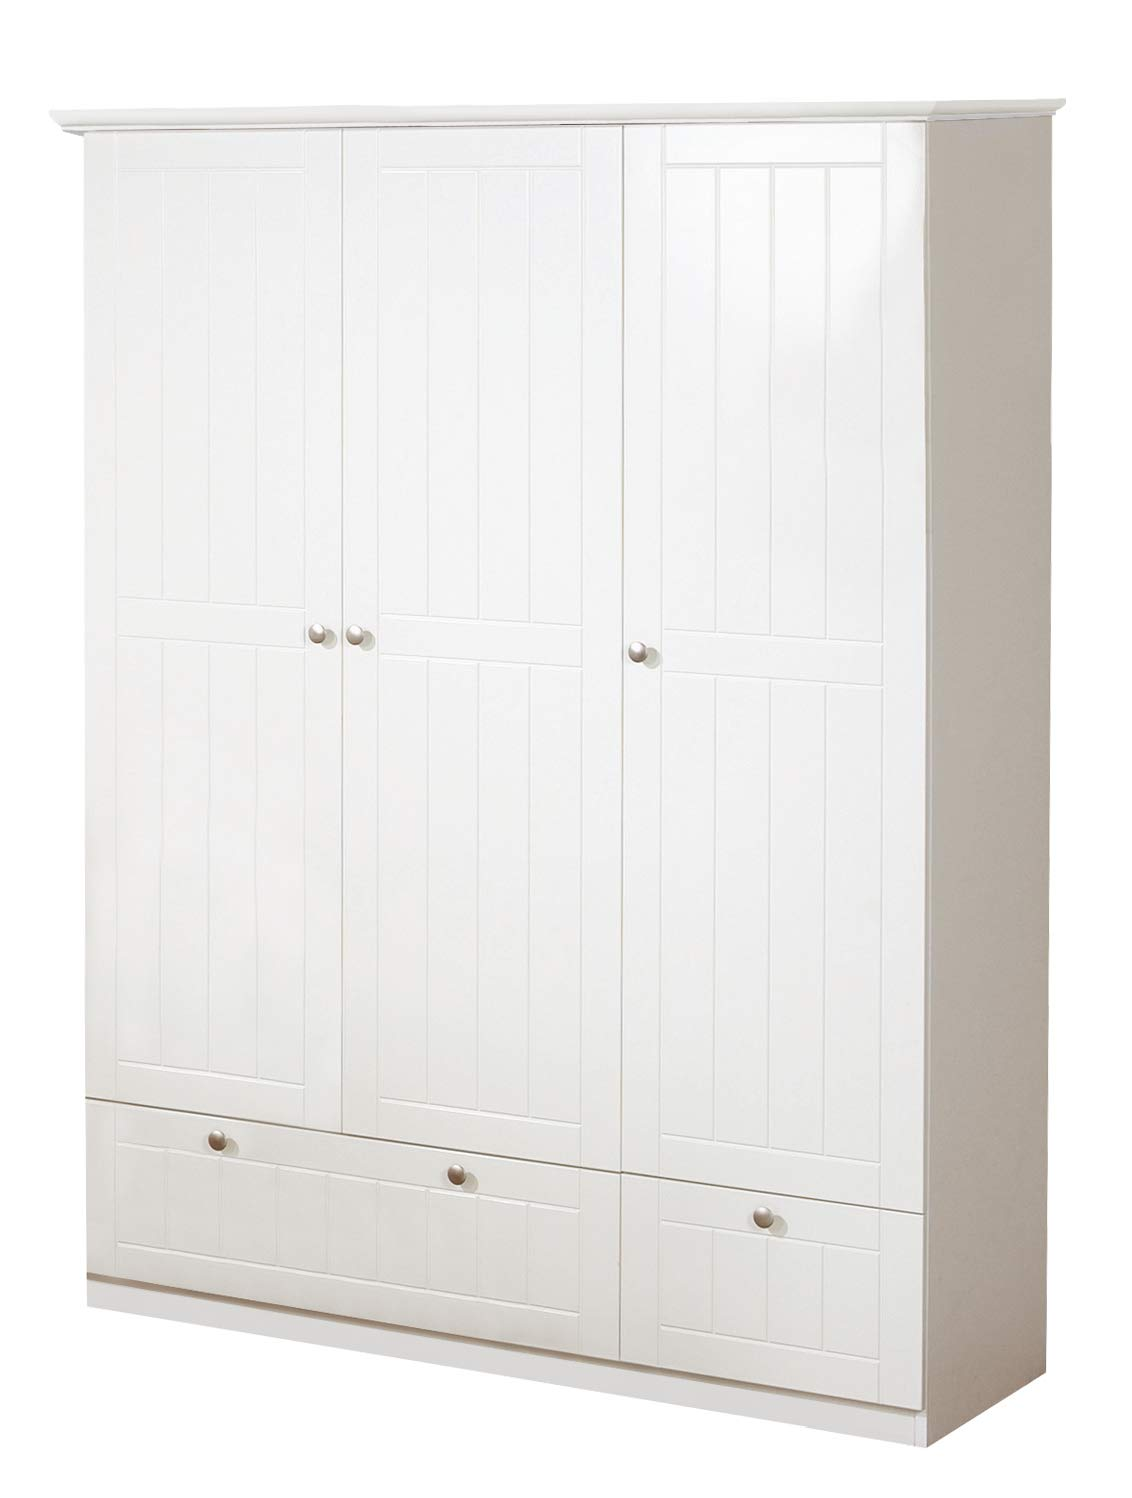 roba Dreamworld 3 1633587A Wardrobe 118.99 g White roba Dreamworld 3 Door Wardrobe with 2 Drawers Roba Wardrobe Metal handles and ABS protective edges complete the modern room component visually Above the hanging rail there is a base that provides additional storage space for clothes and laundry. 1